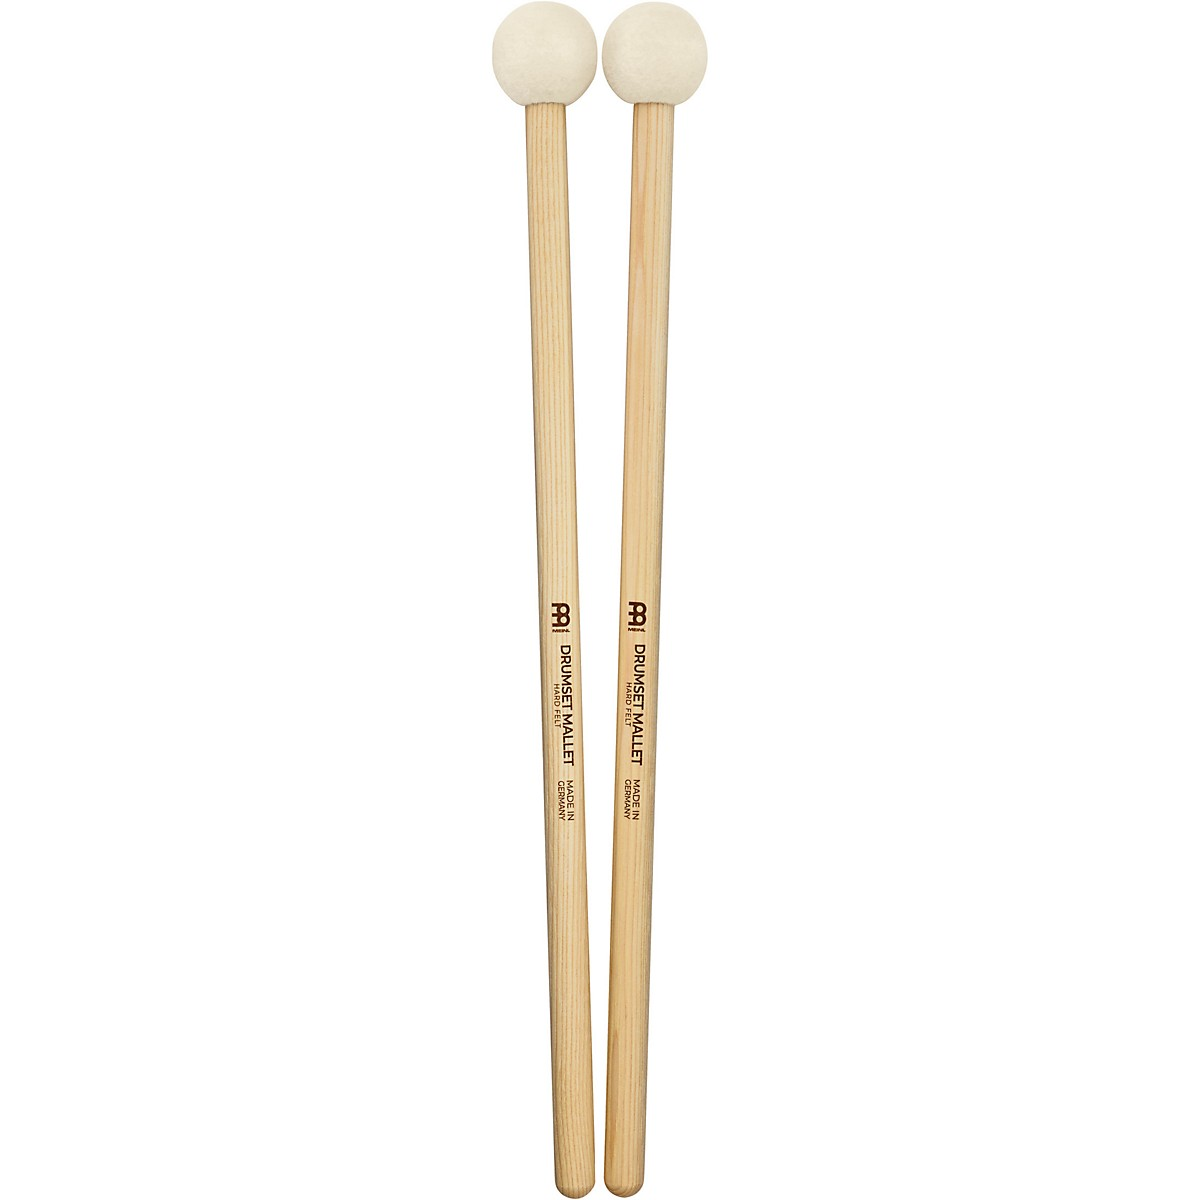 Meinl Stick & Brush Hard Mallets